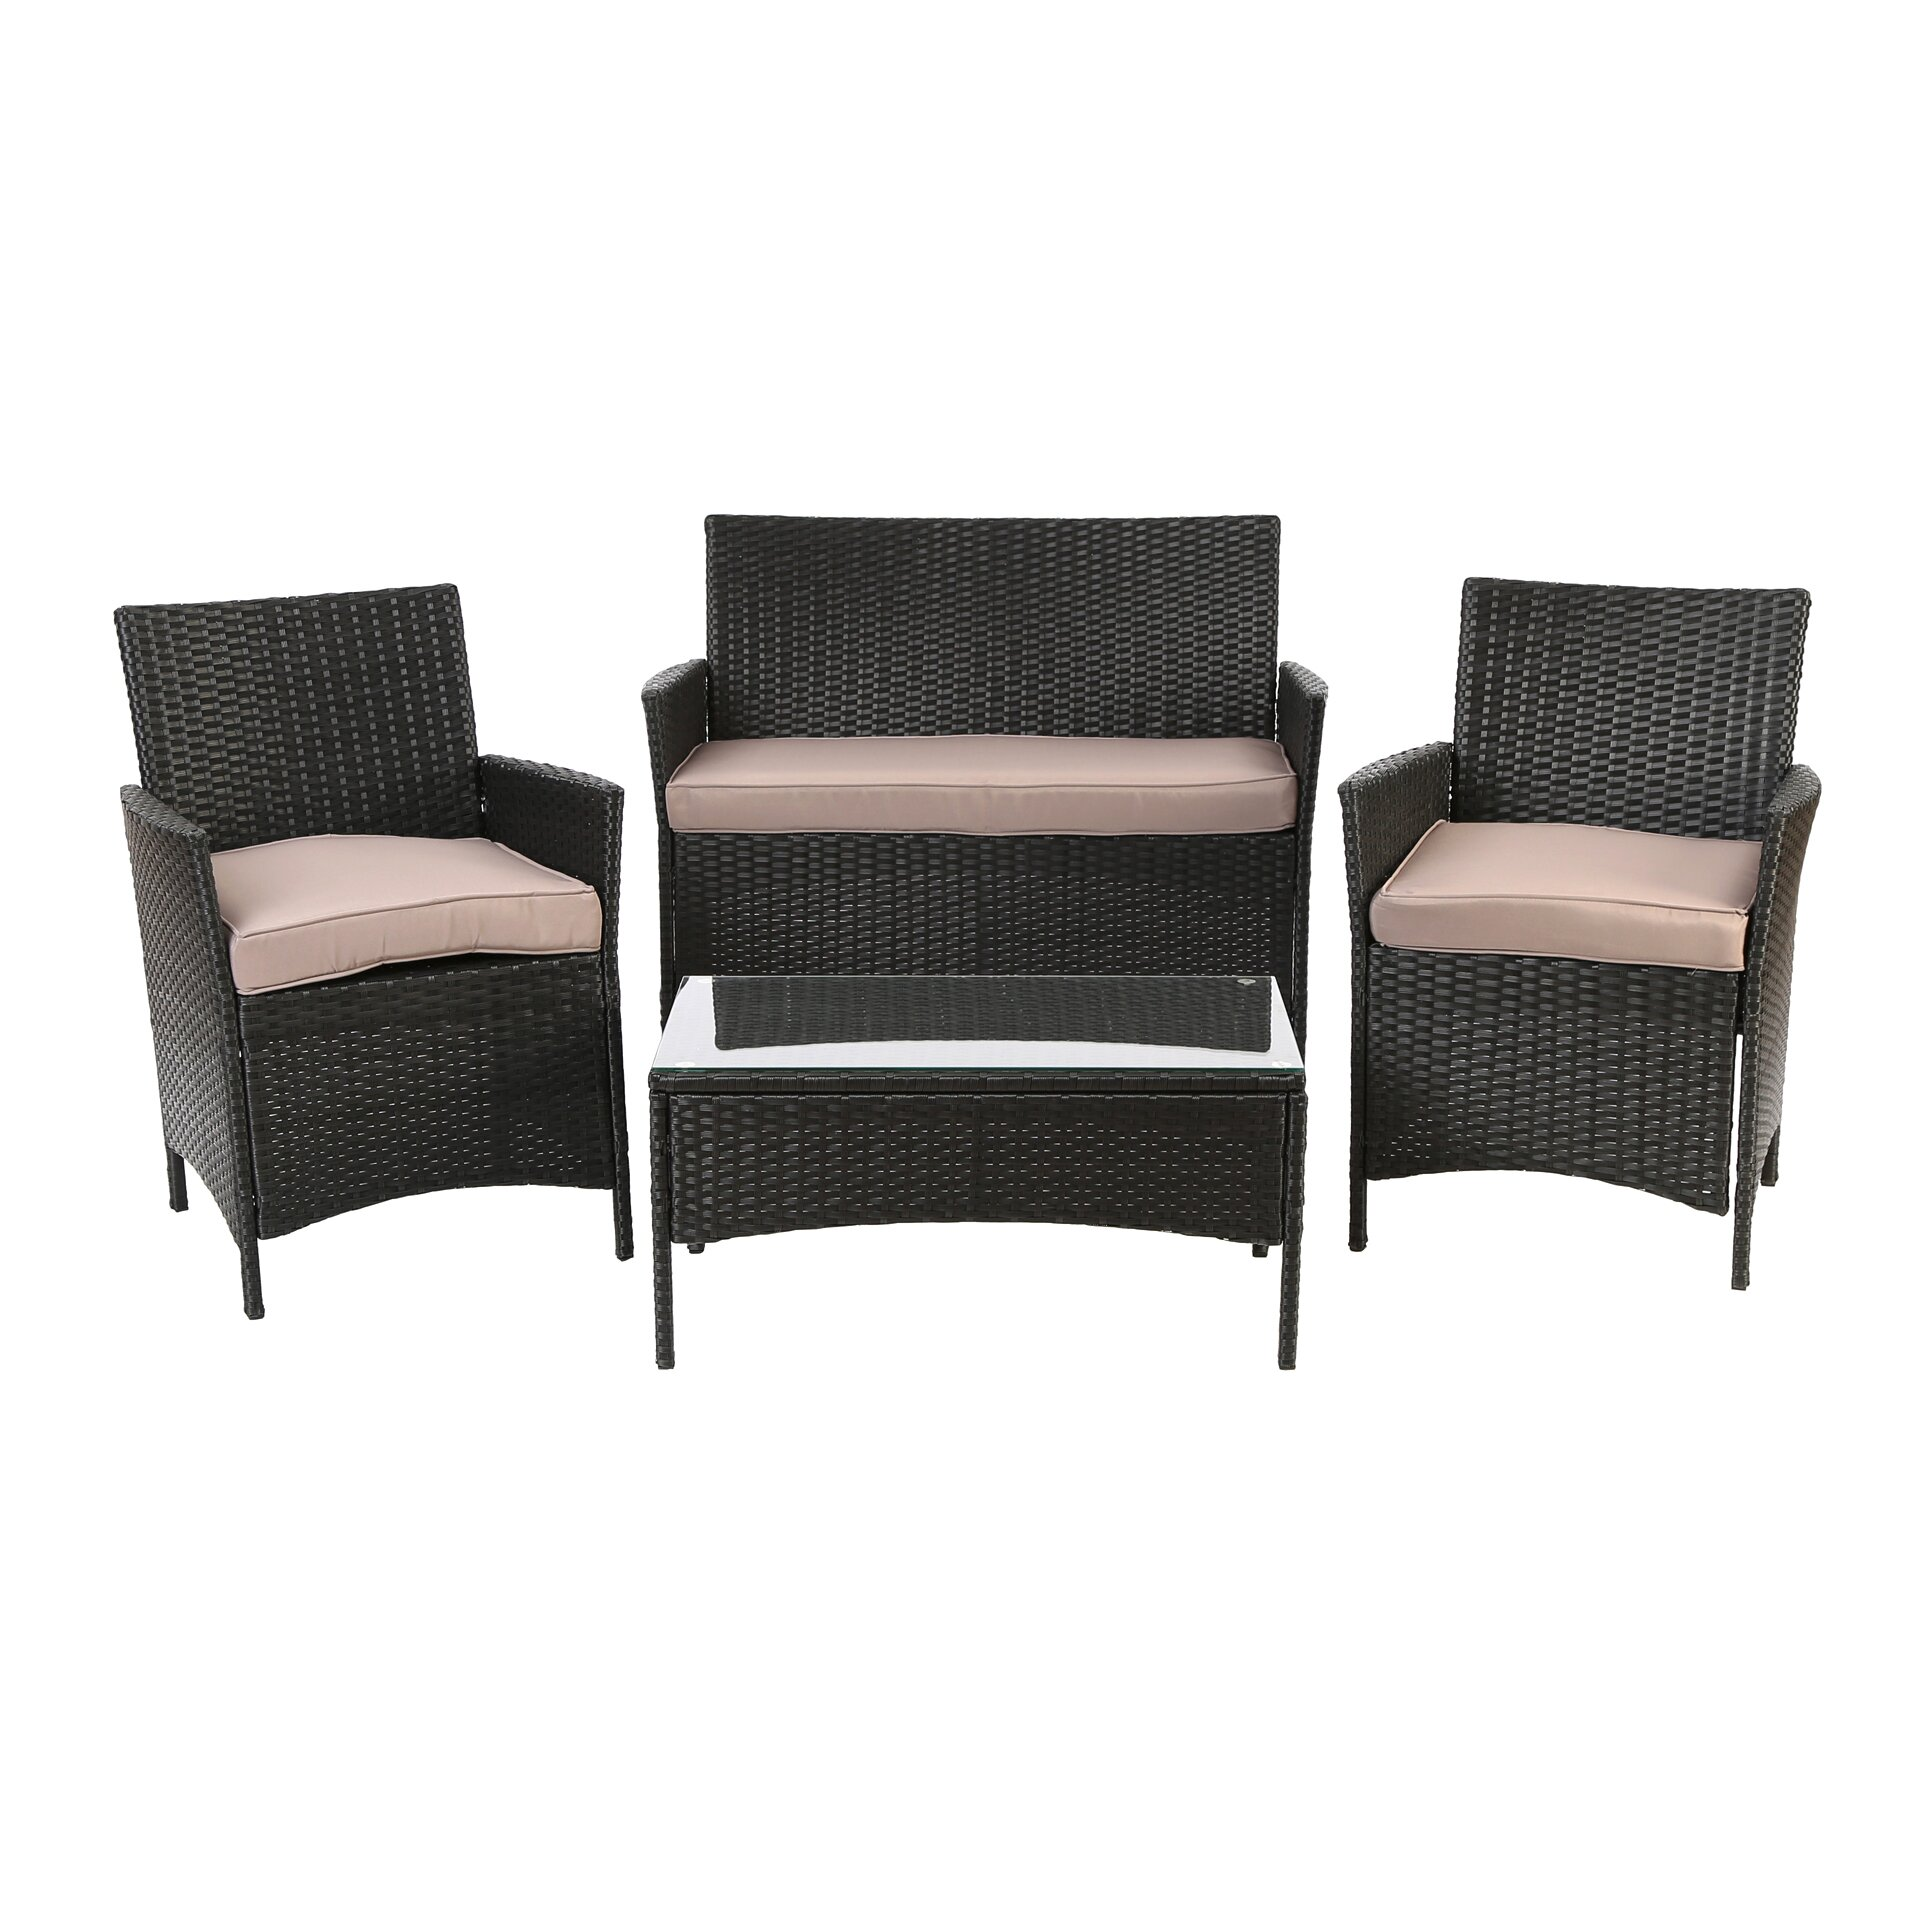 Charlton home bellevue 4 piece seating group with cushion for Home piece